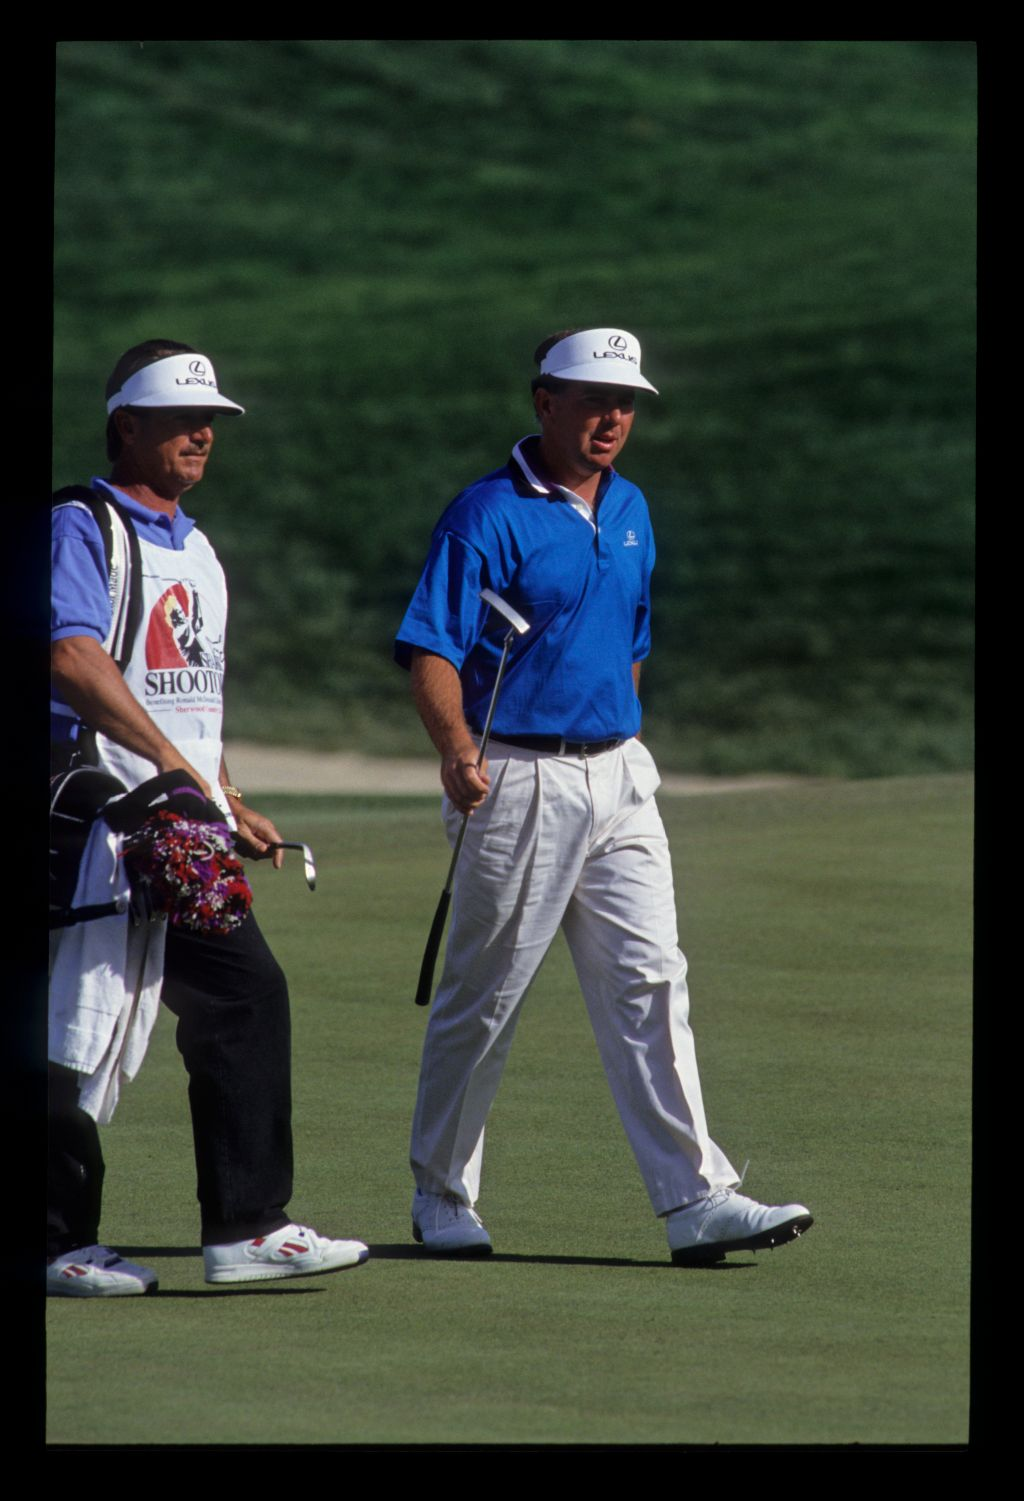 Mark O'Meara and his caddie on the green during the 1991 Shark Shootout